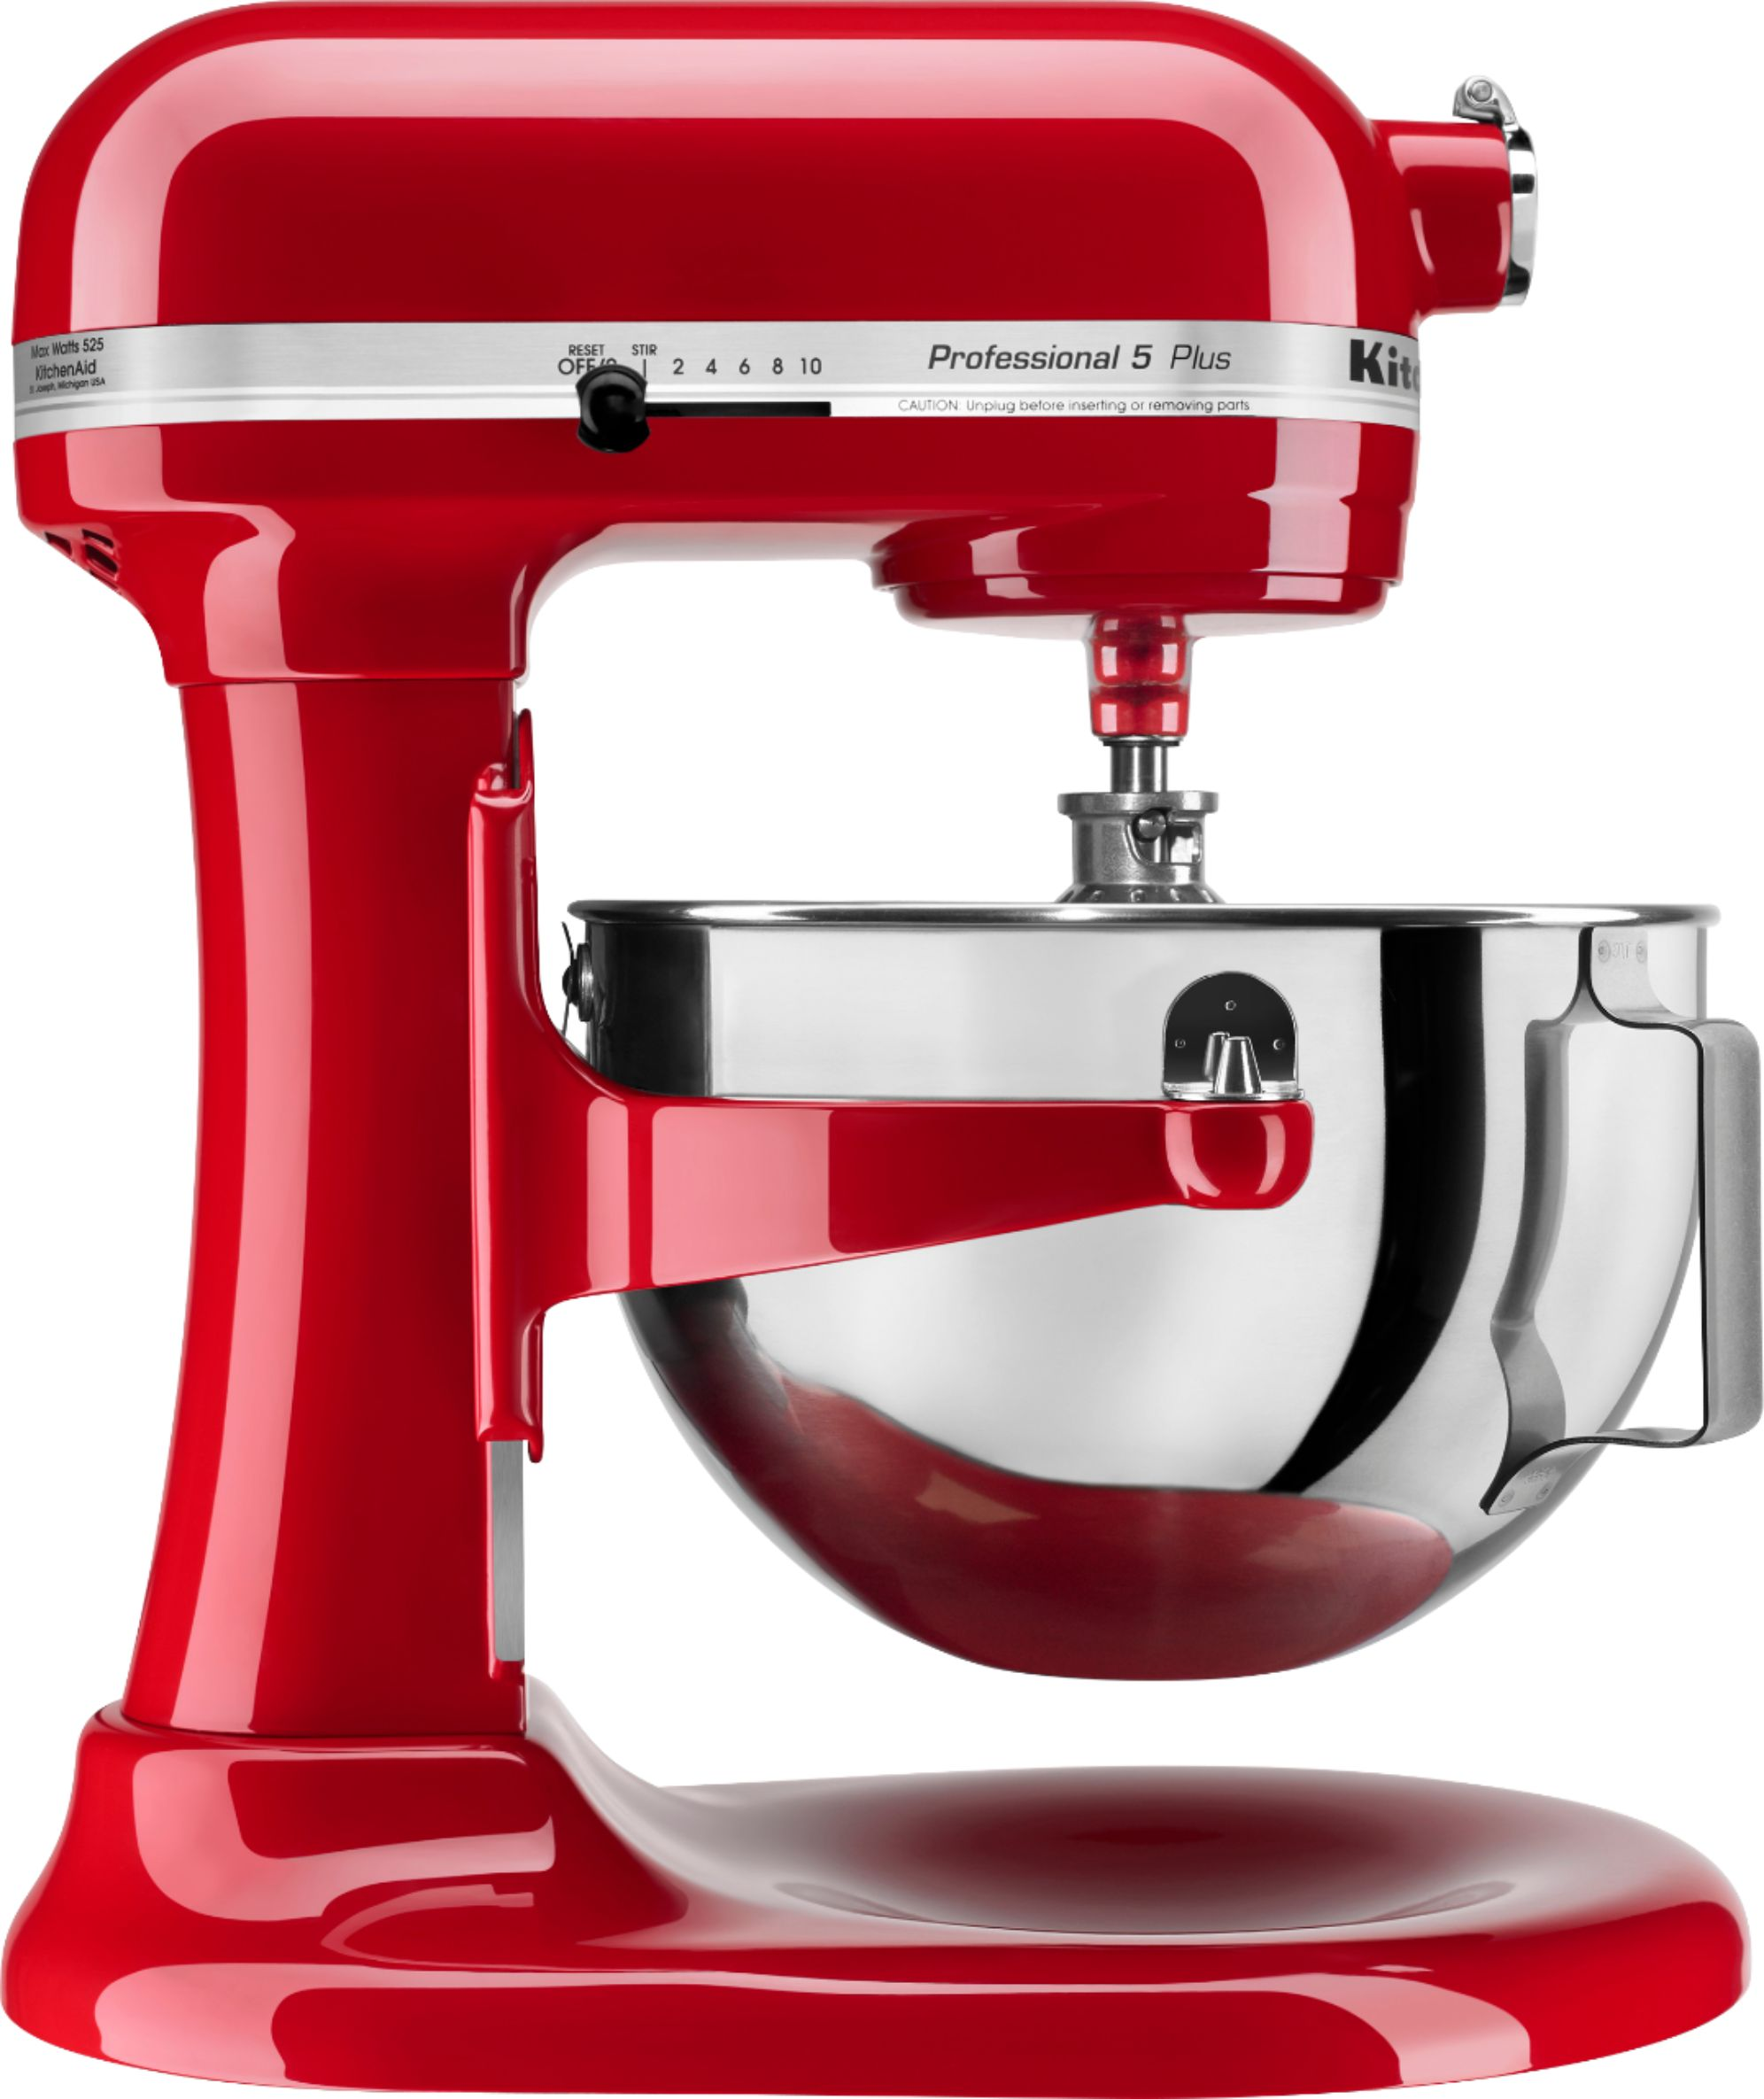 kitchen aid products folding table kitchenaid kv25g0xer professional 500 series stand mixer red empire angle zoom